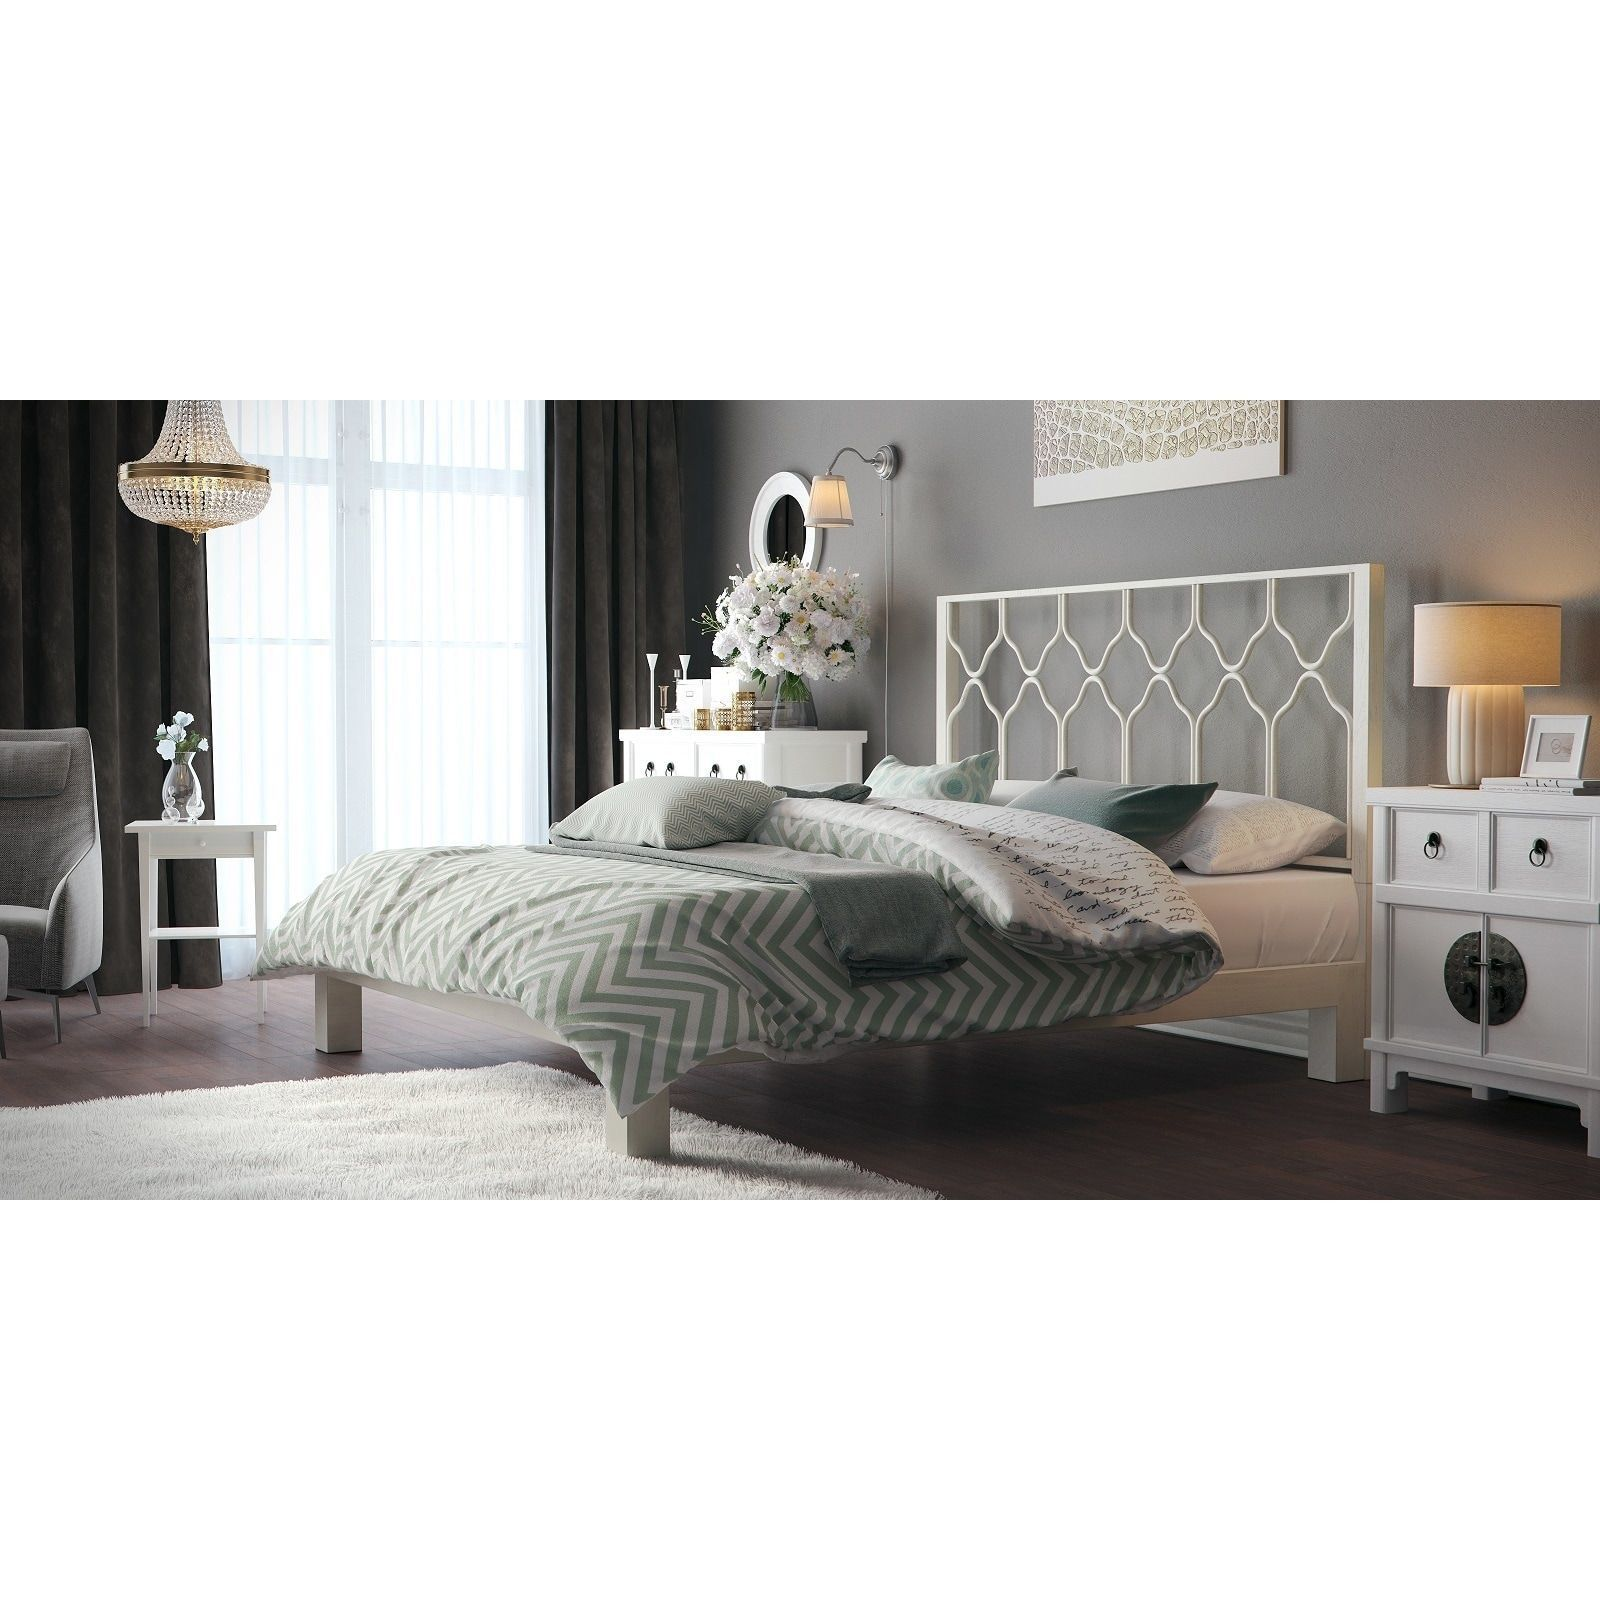 honeycomb motif designs white metal headboard and aura white